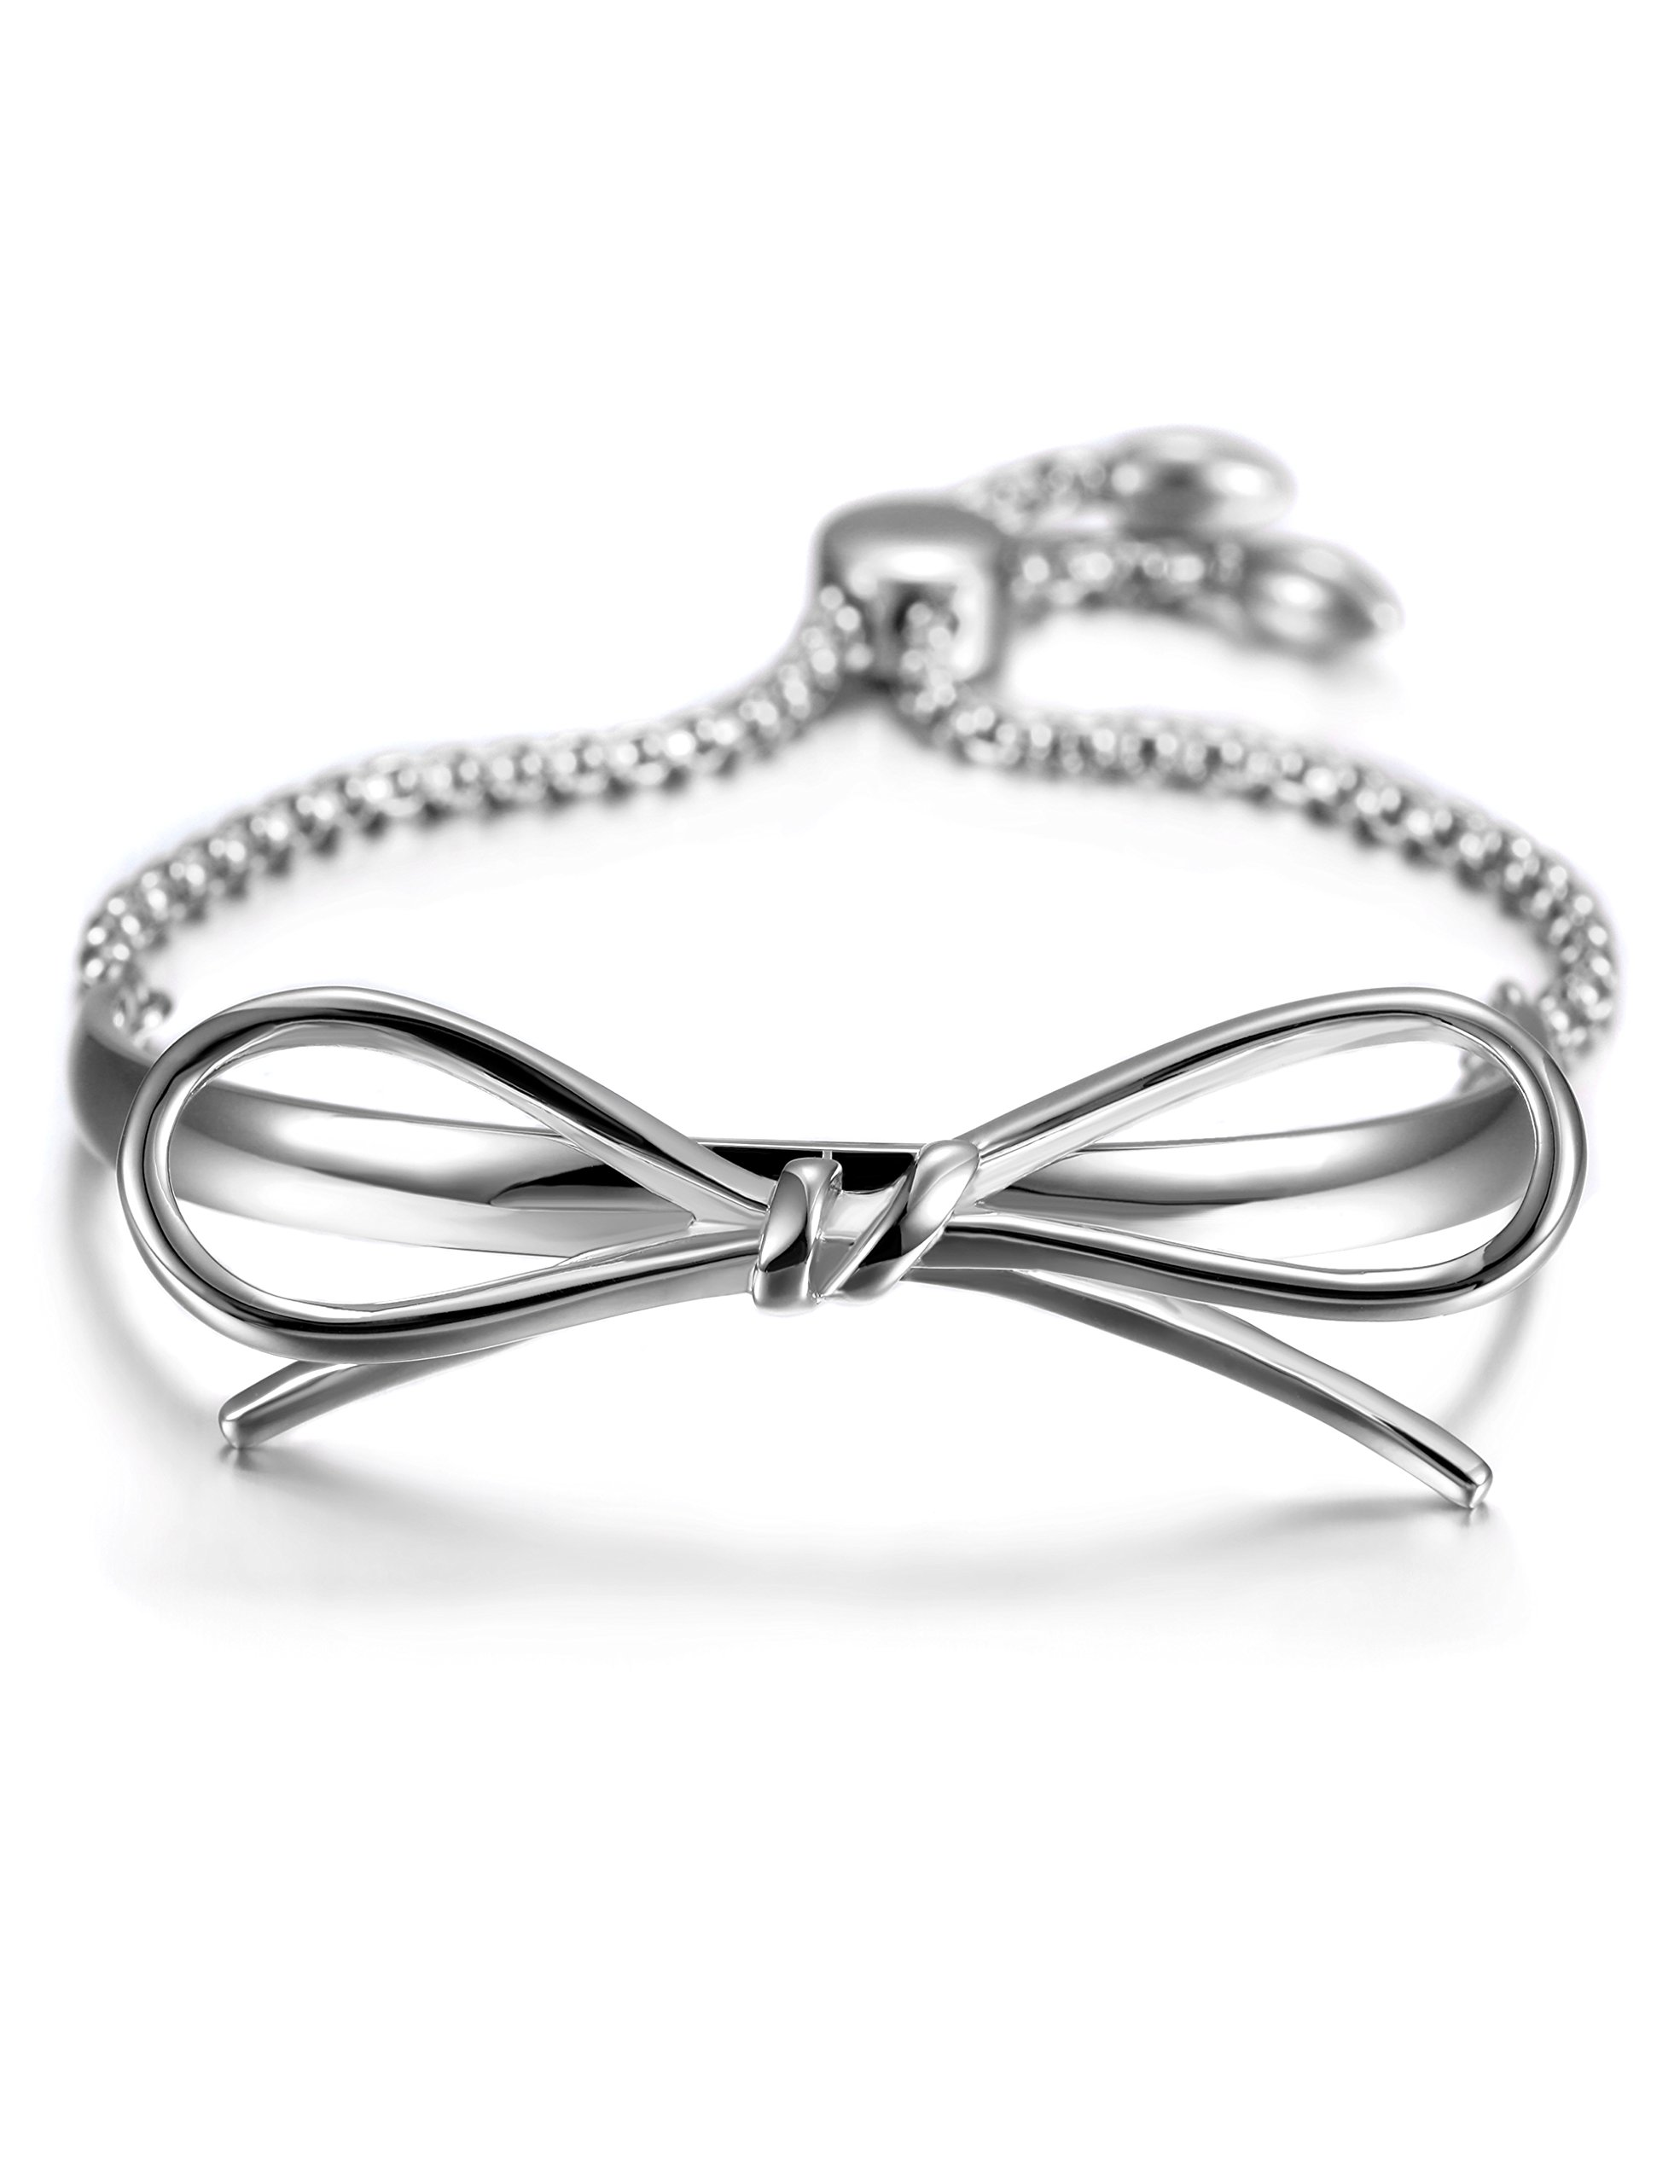 JINBAOYING Stainless Steel Slider Adjustable Bow Bracelets for Women Girls